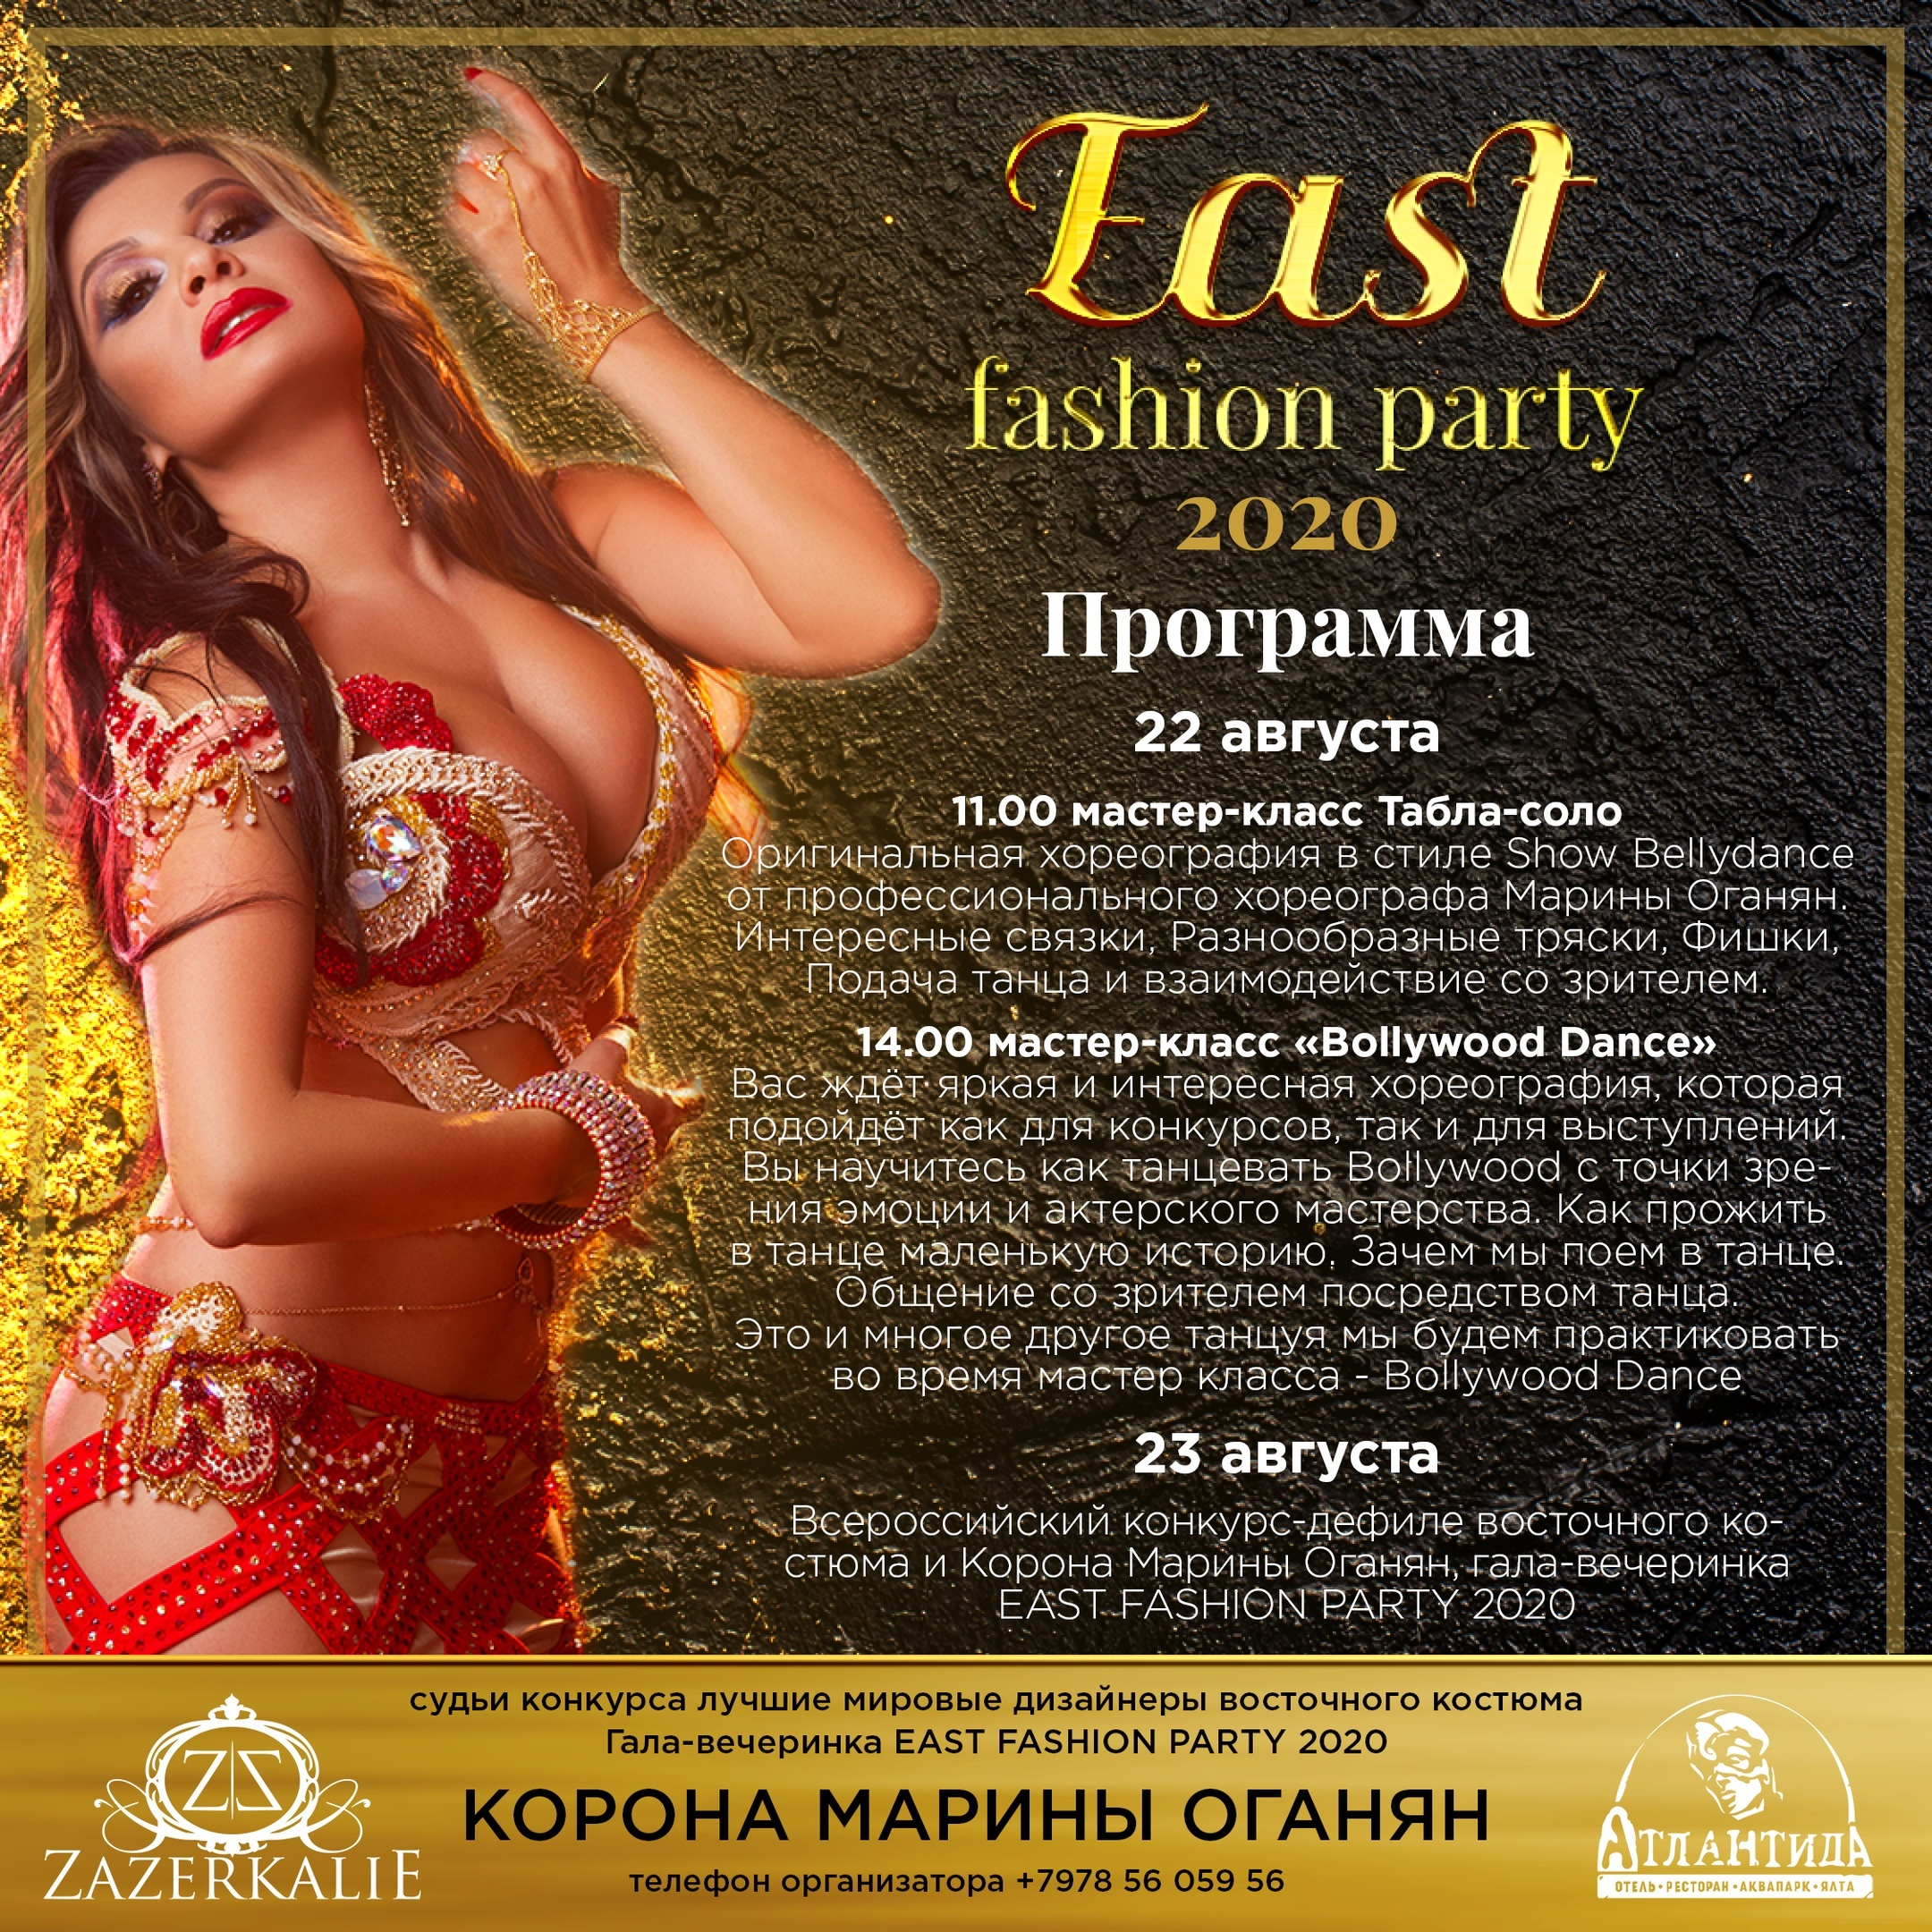 Queen East Fashion Party 2020 конкурс-дефиле